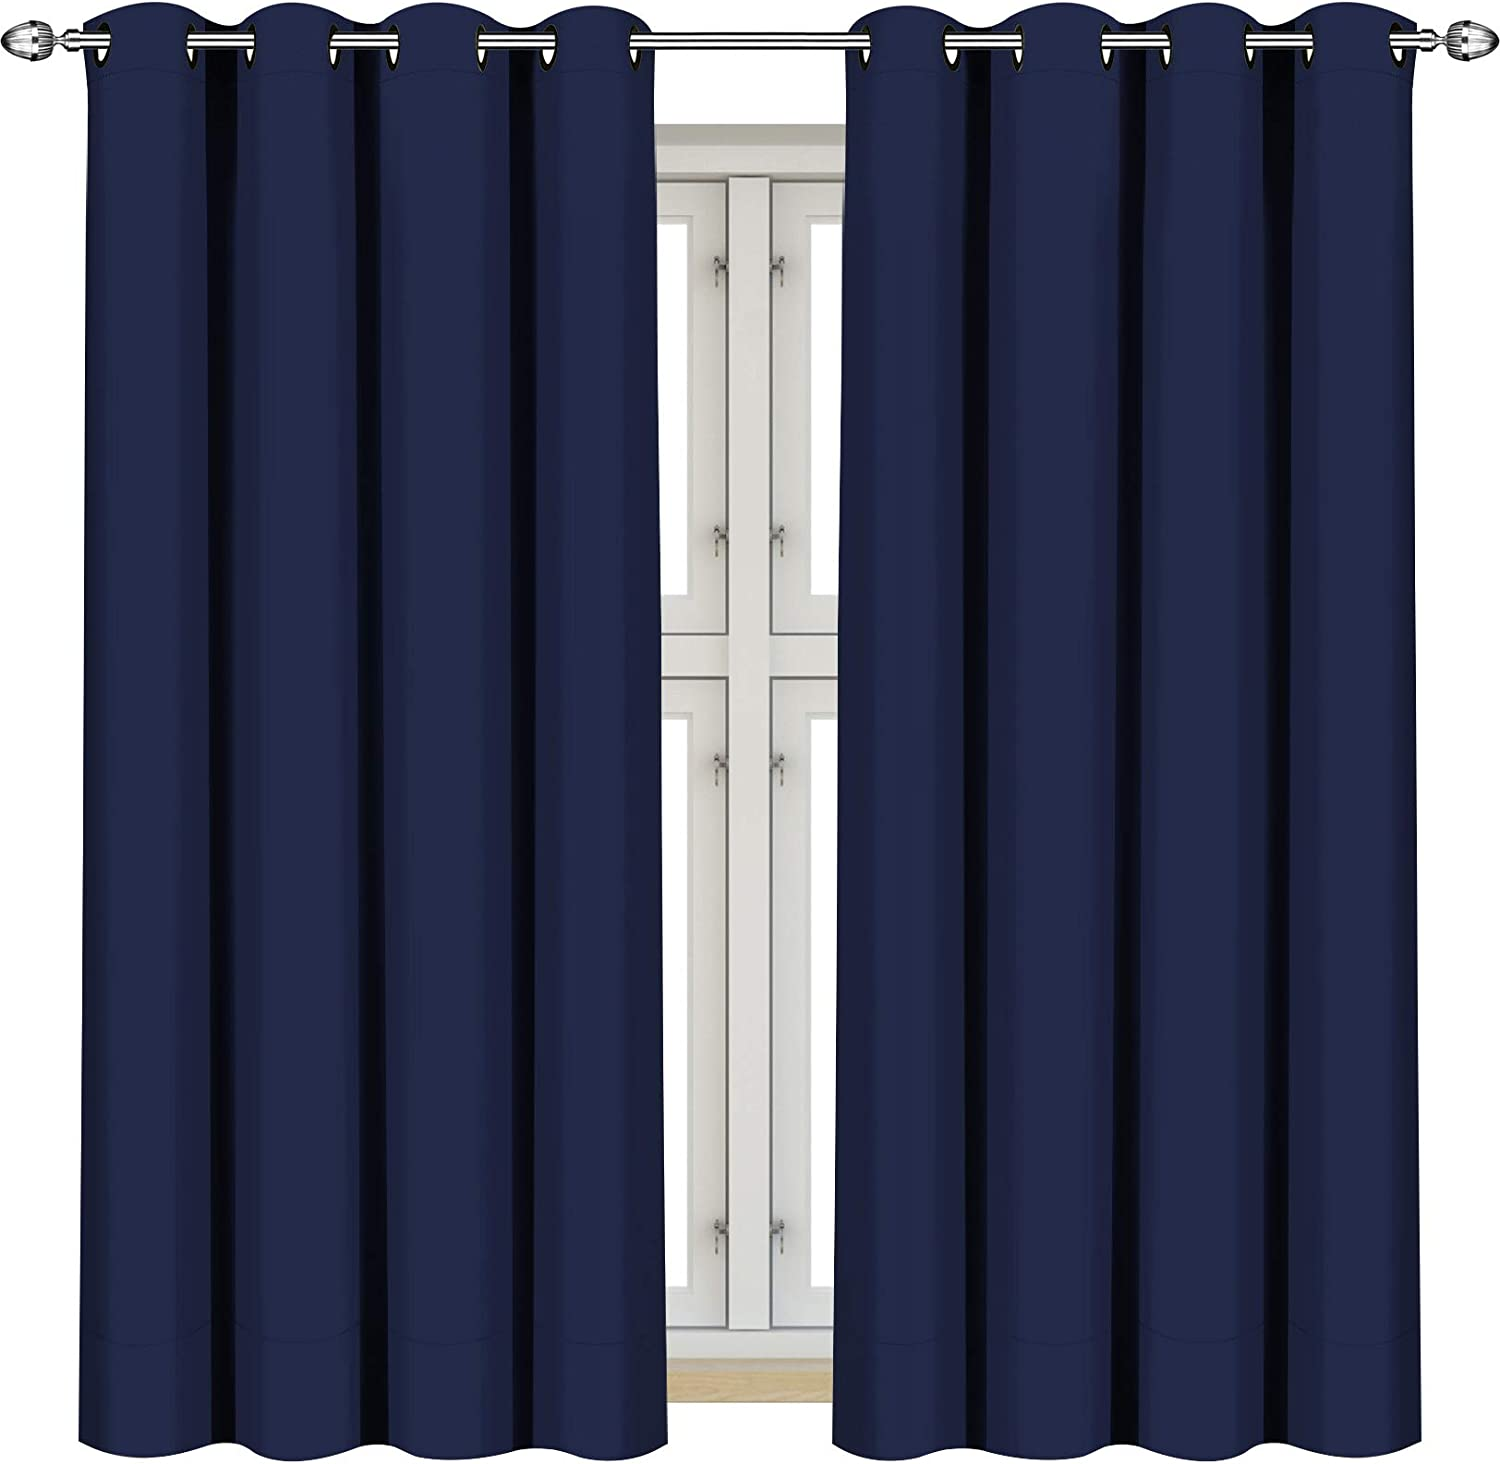 """Utopia Bedding 2 Panels Eyelet Blackout Window Curtains Thermal Insulated for Bedroom 137 cm Drop (Navy, 117 cm Wide) 2x W46""""xL54"""" (117 x 137 cm) Navy"""